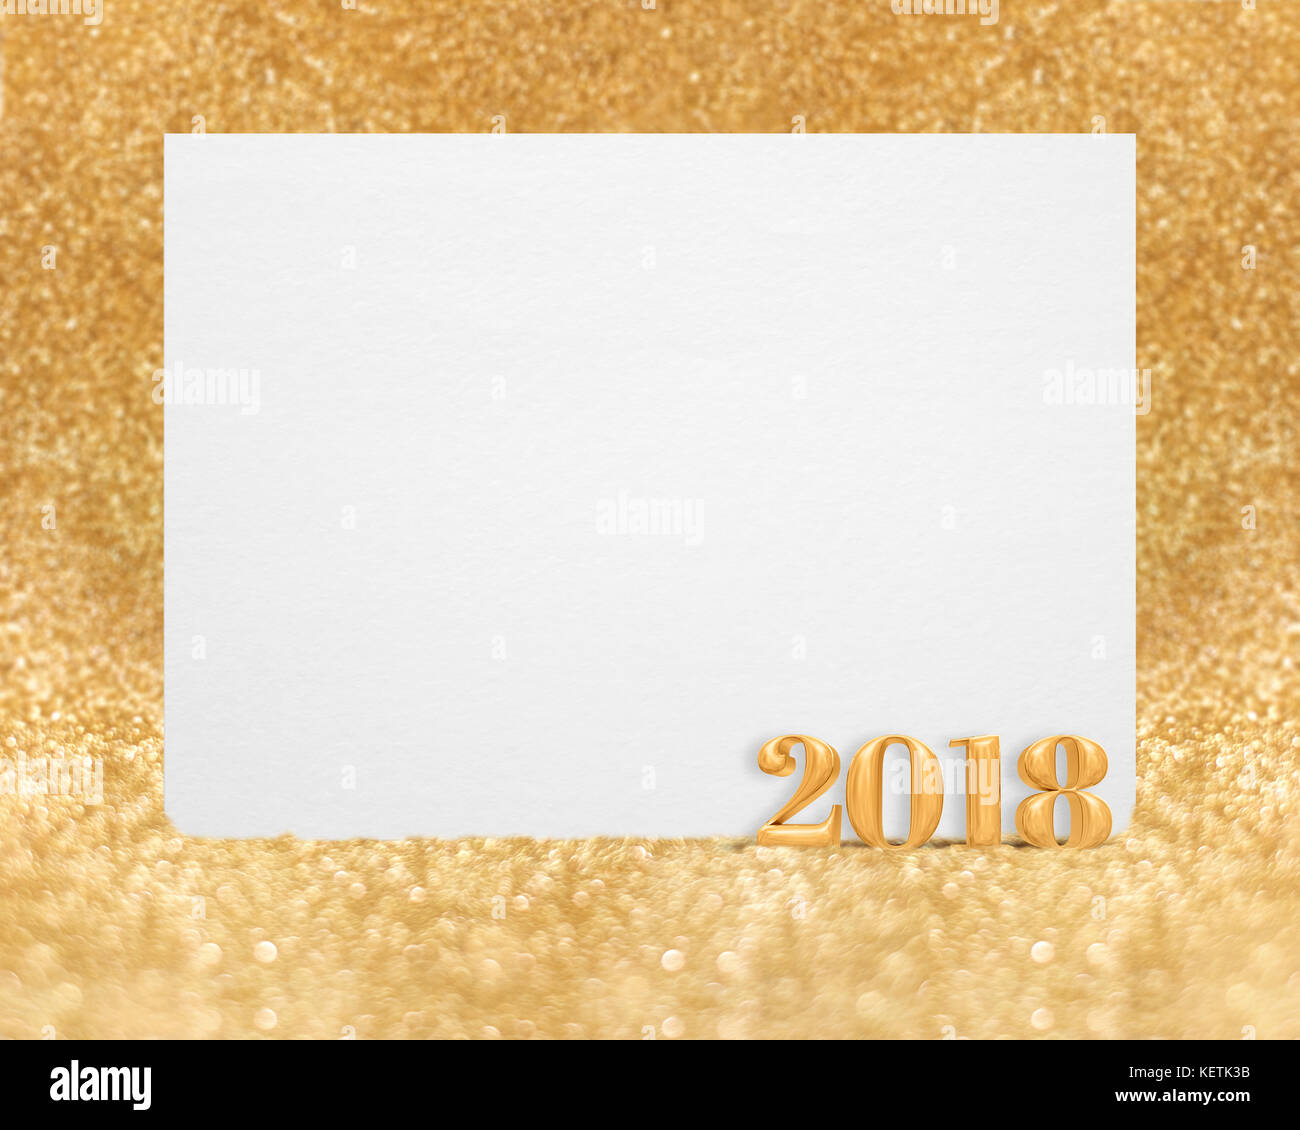 Gold color new year 2018 3d rendering with blank white greeting gold color new year 2018 3d rendering with blank white greeting card in golend sparkling glitter studio room bokehmock up template for display of m4hsunfo